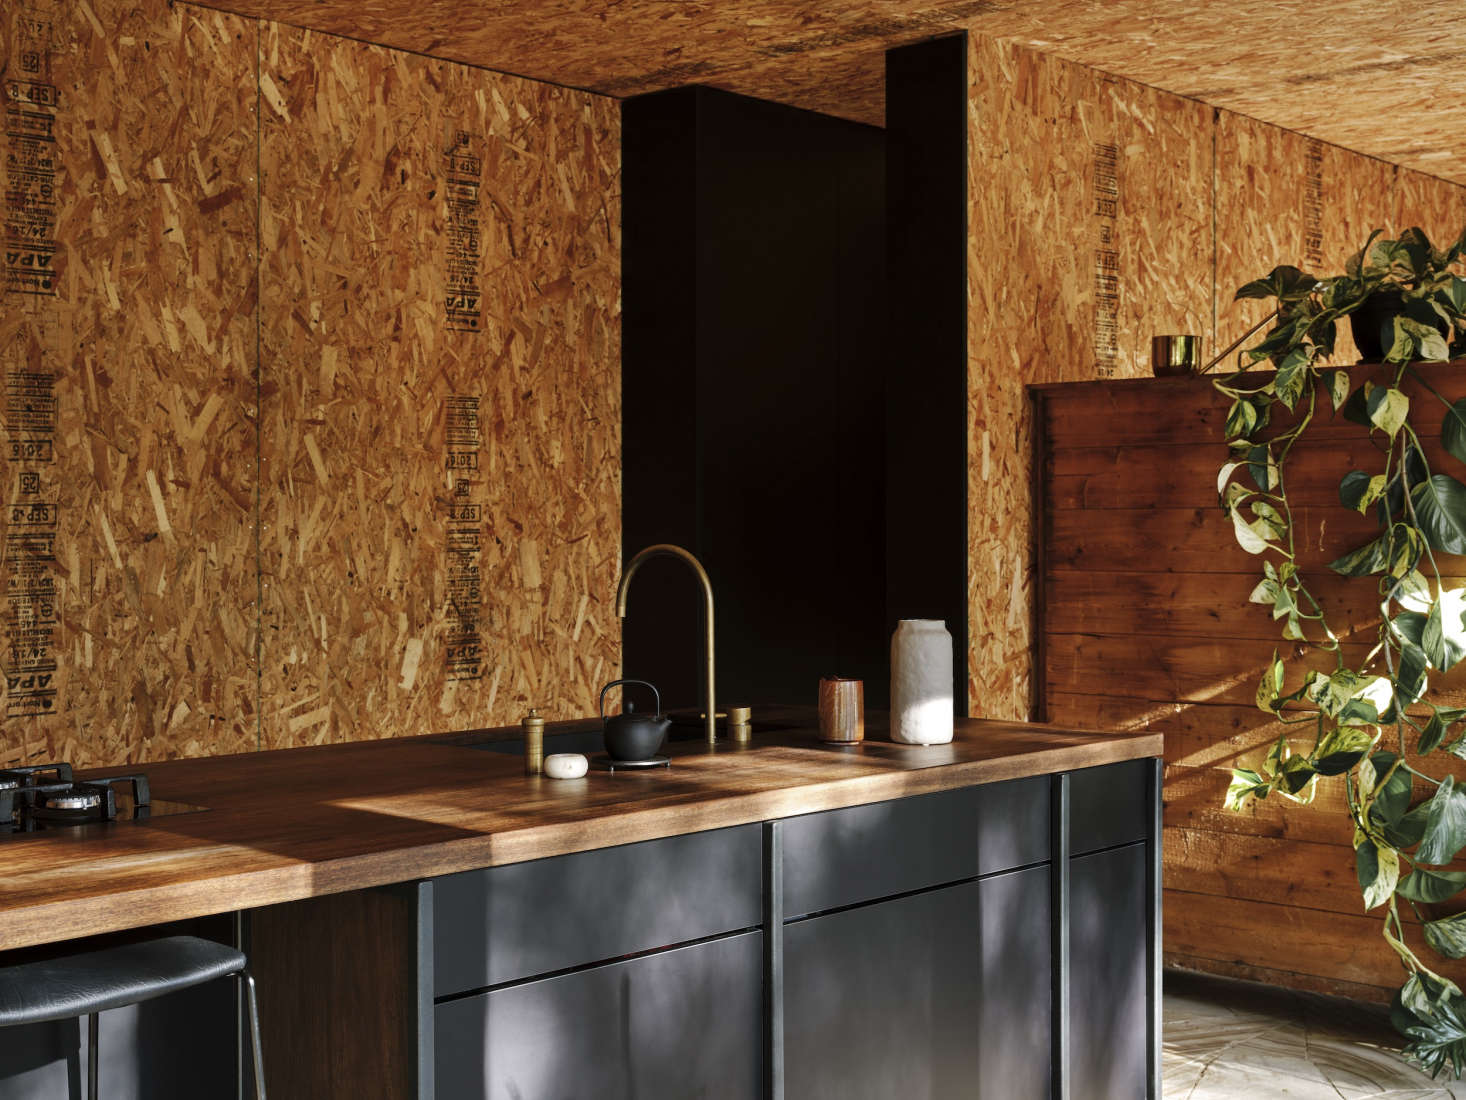 The Cape Barren faucet in raw brass is from a collaboration that Archier did with tapware boutique Wood Melbourne. The partition between kitchen and bedroom also acts as storage space: &#8